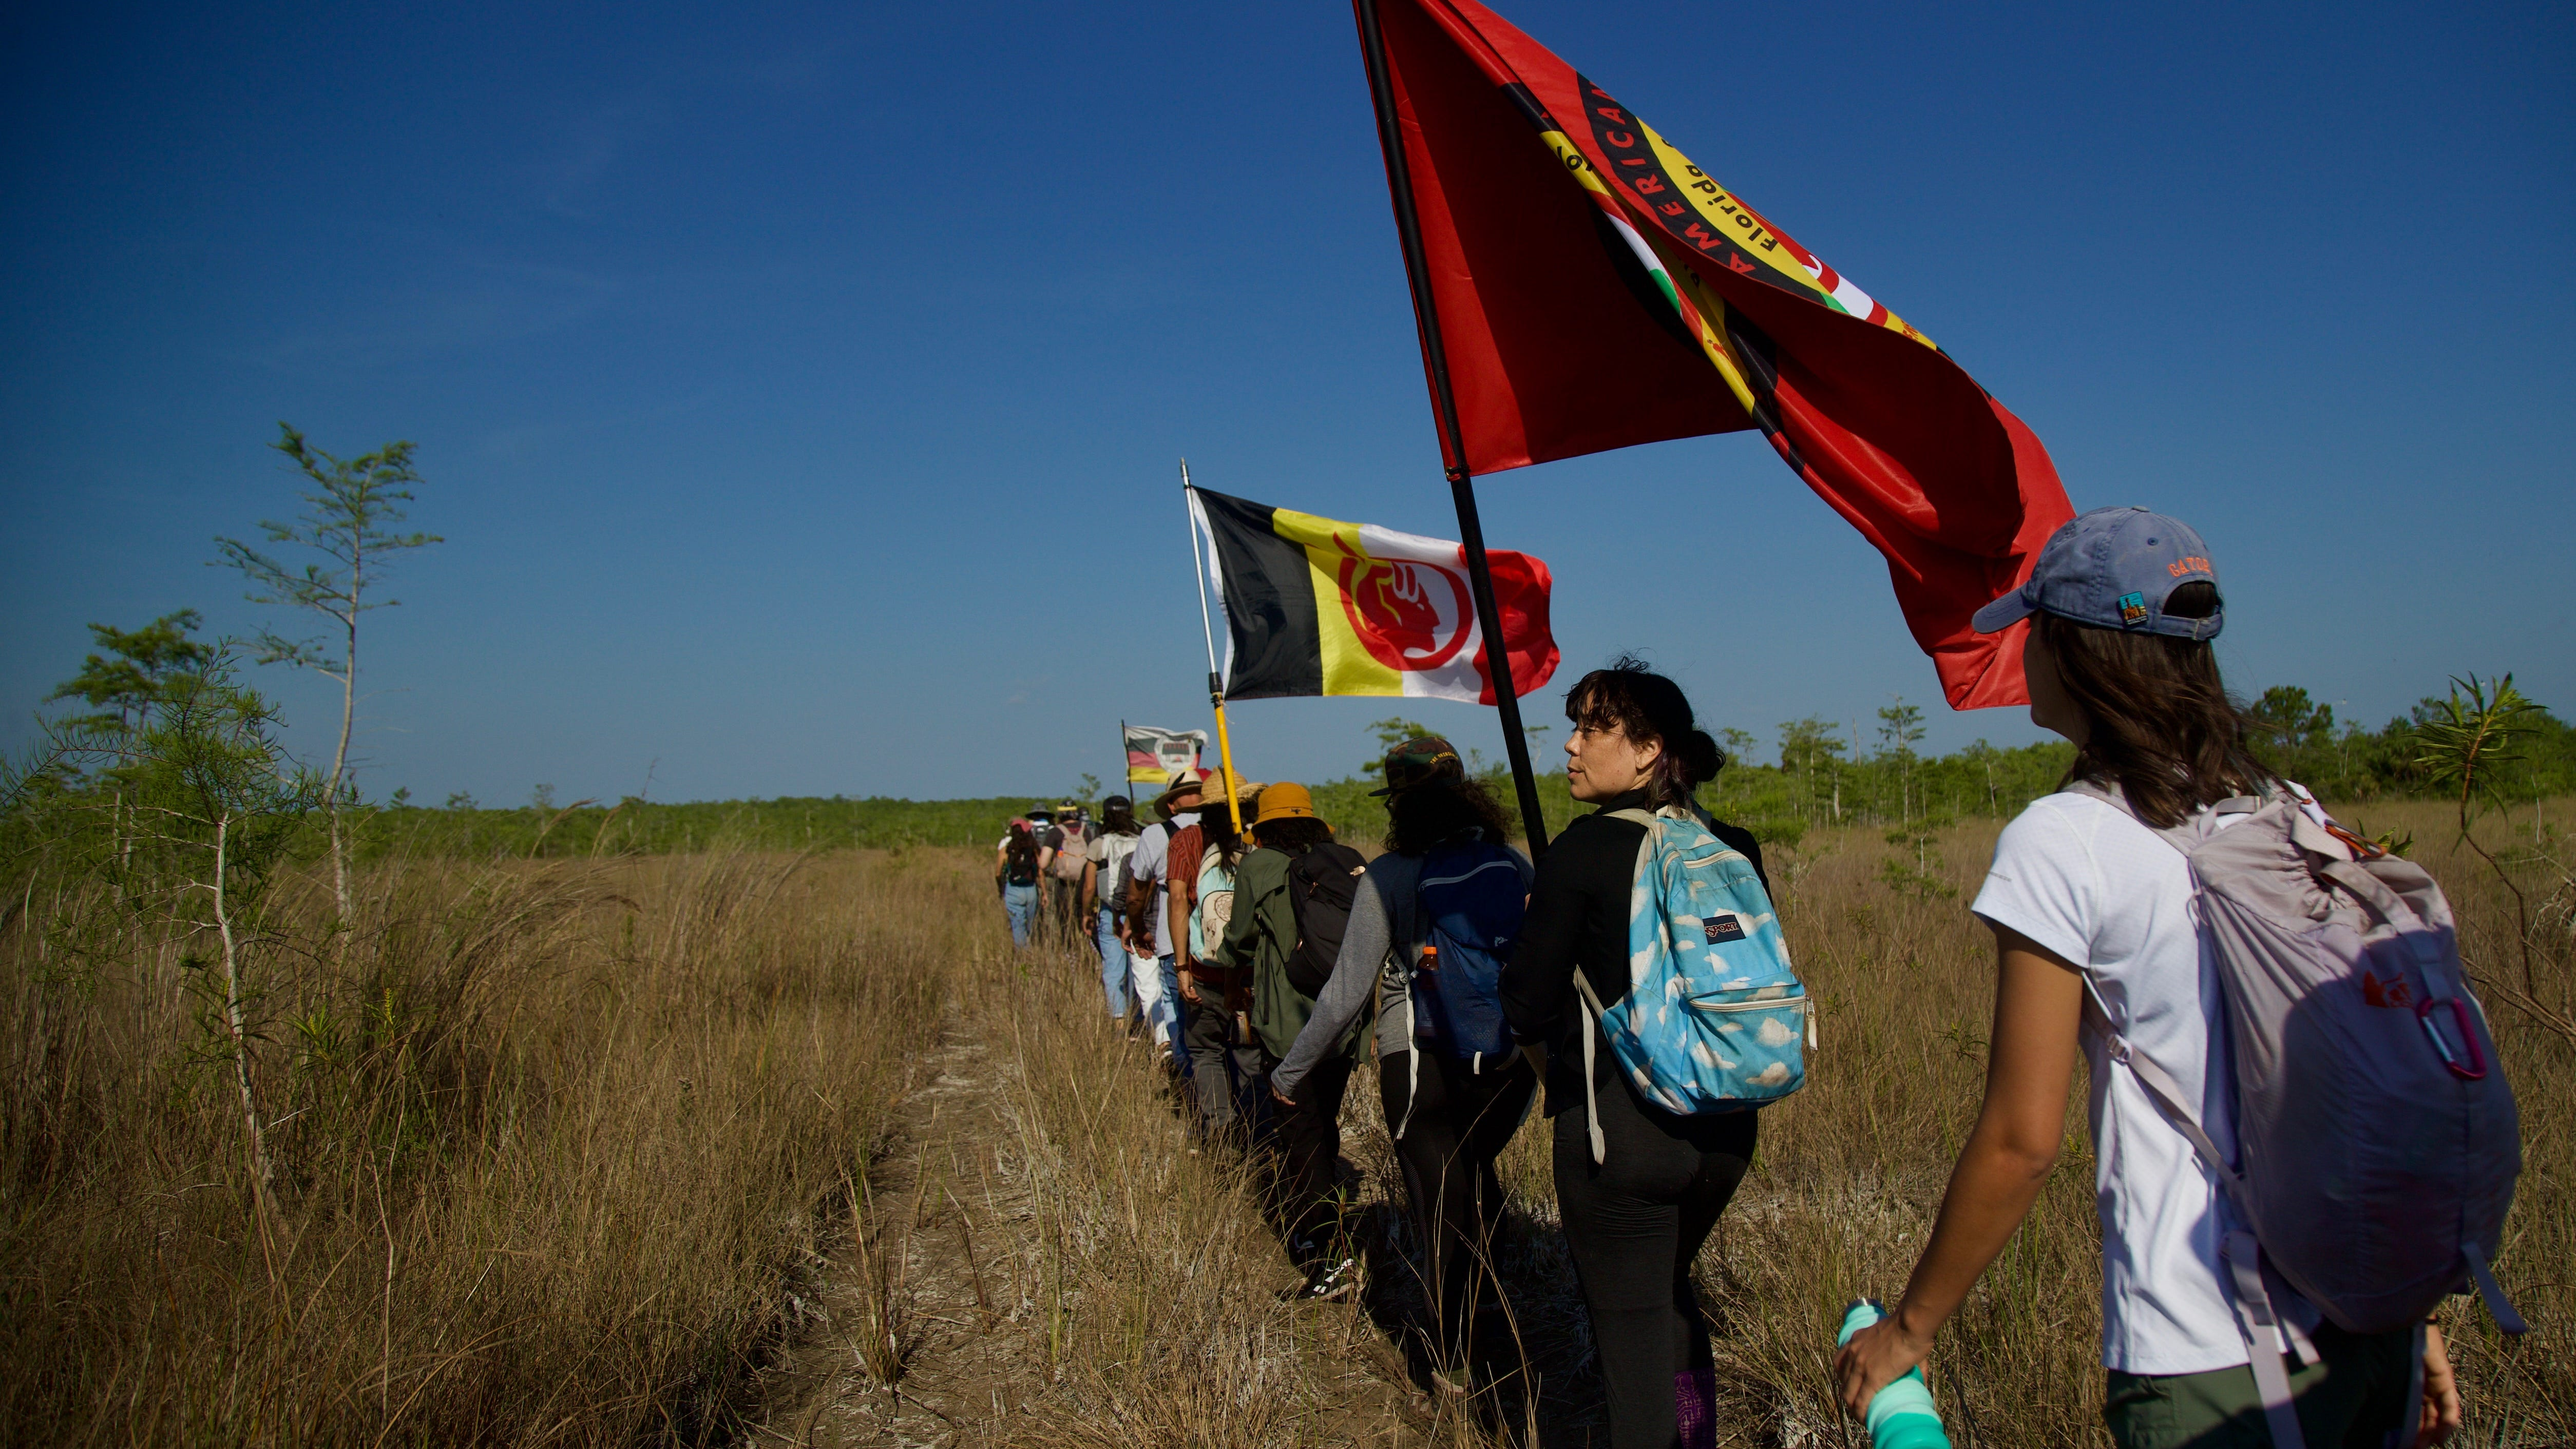 Protesters hike, speak to protest oil drilling